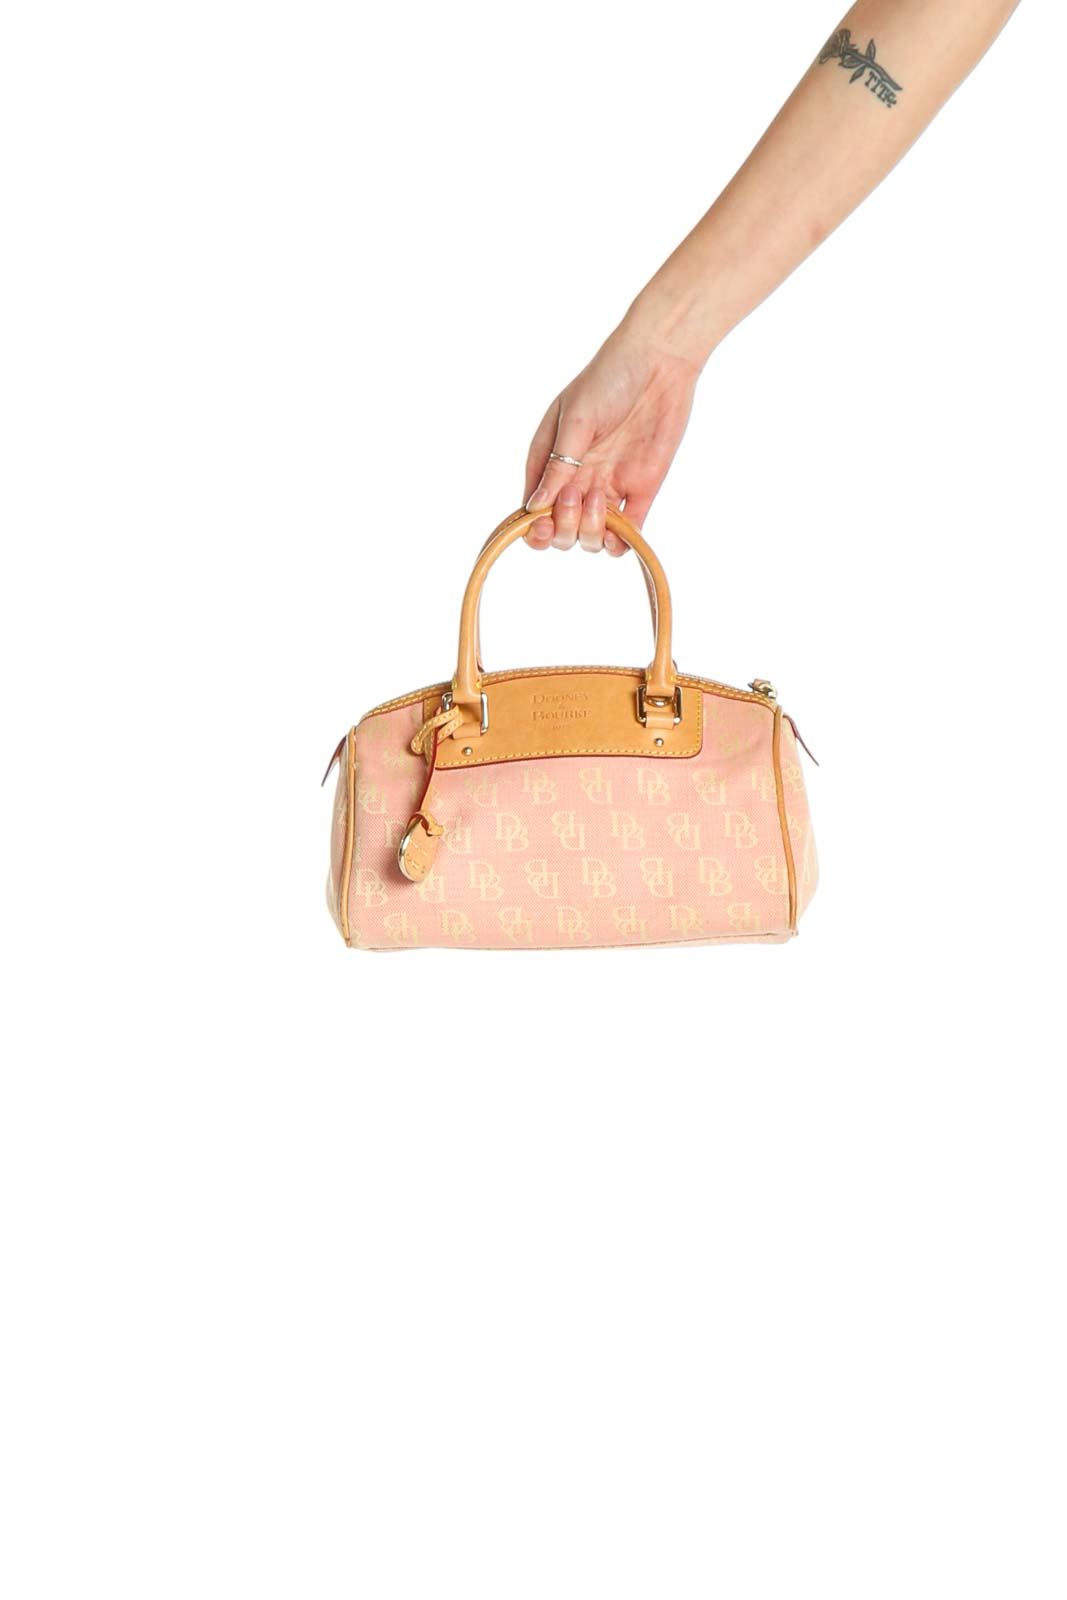 Beige Satchel Bag Front